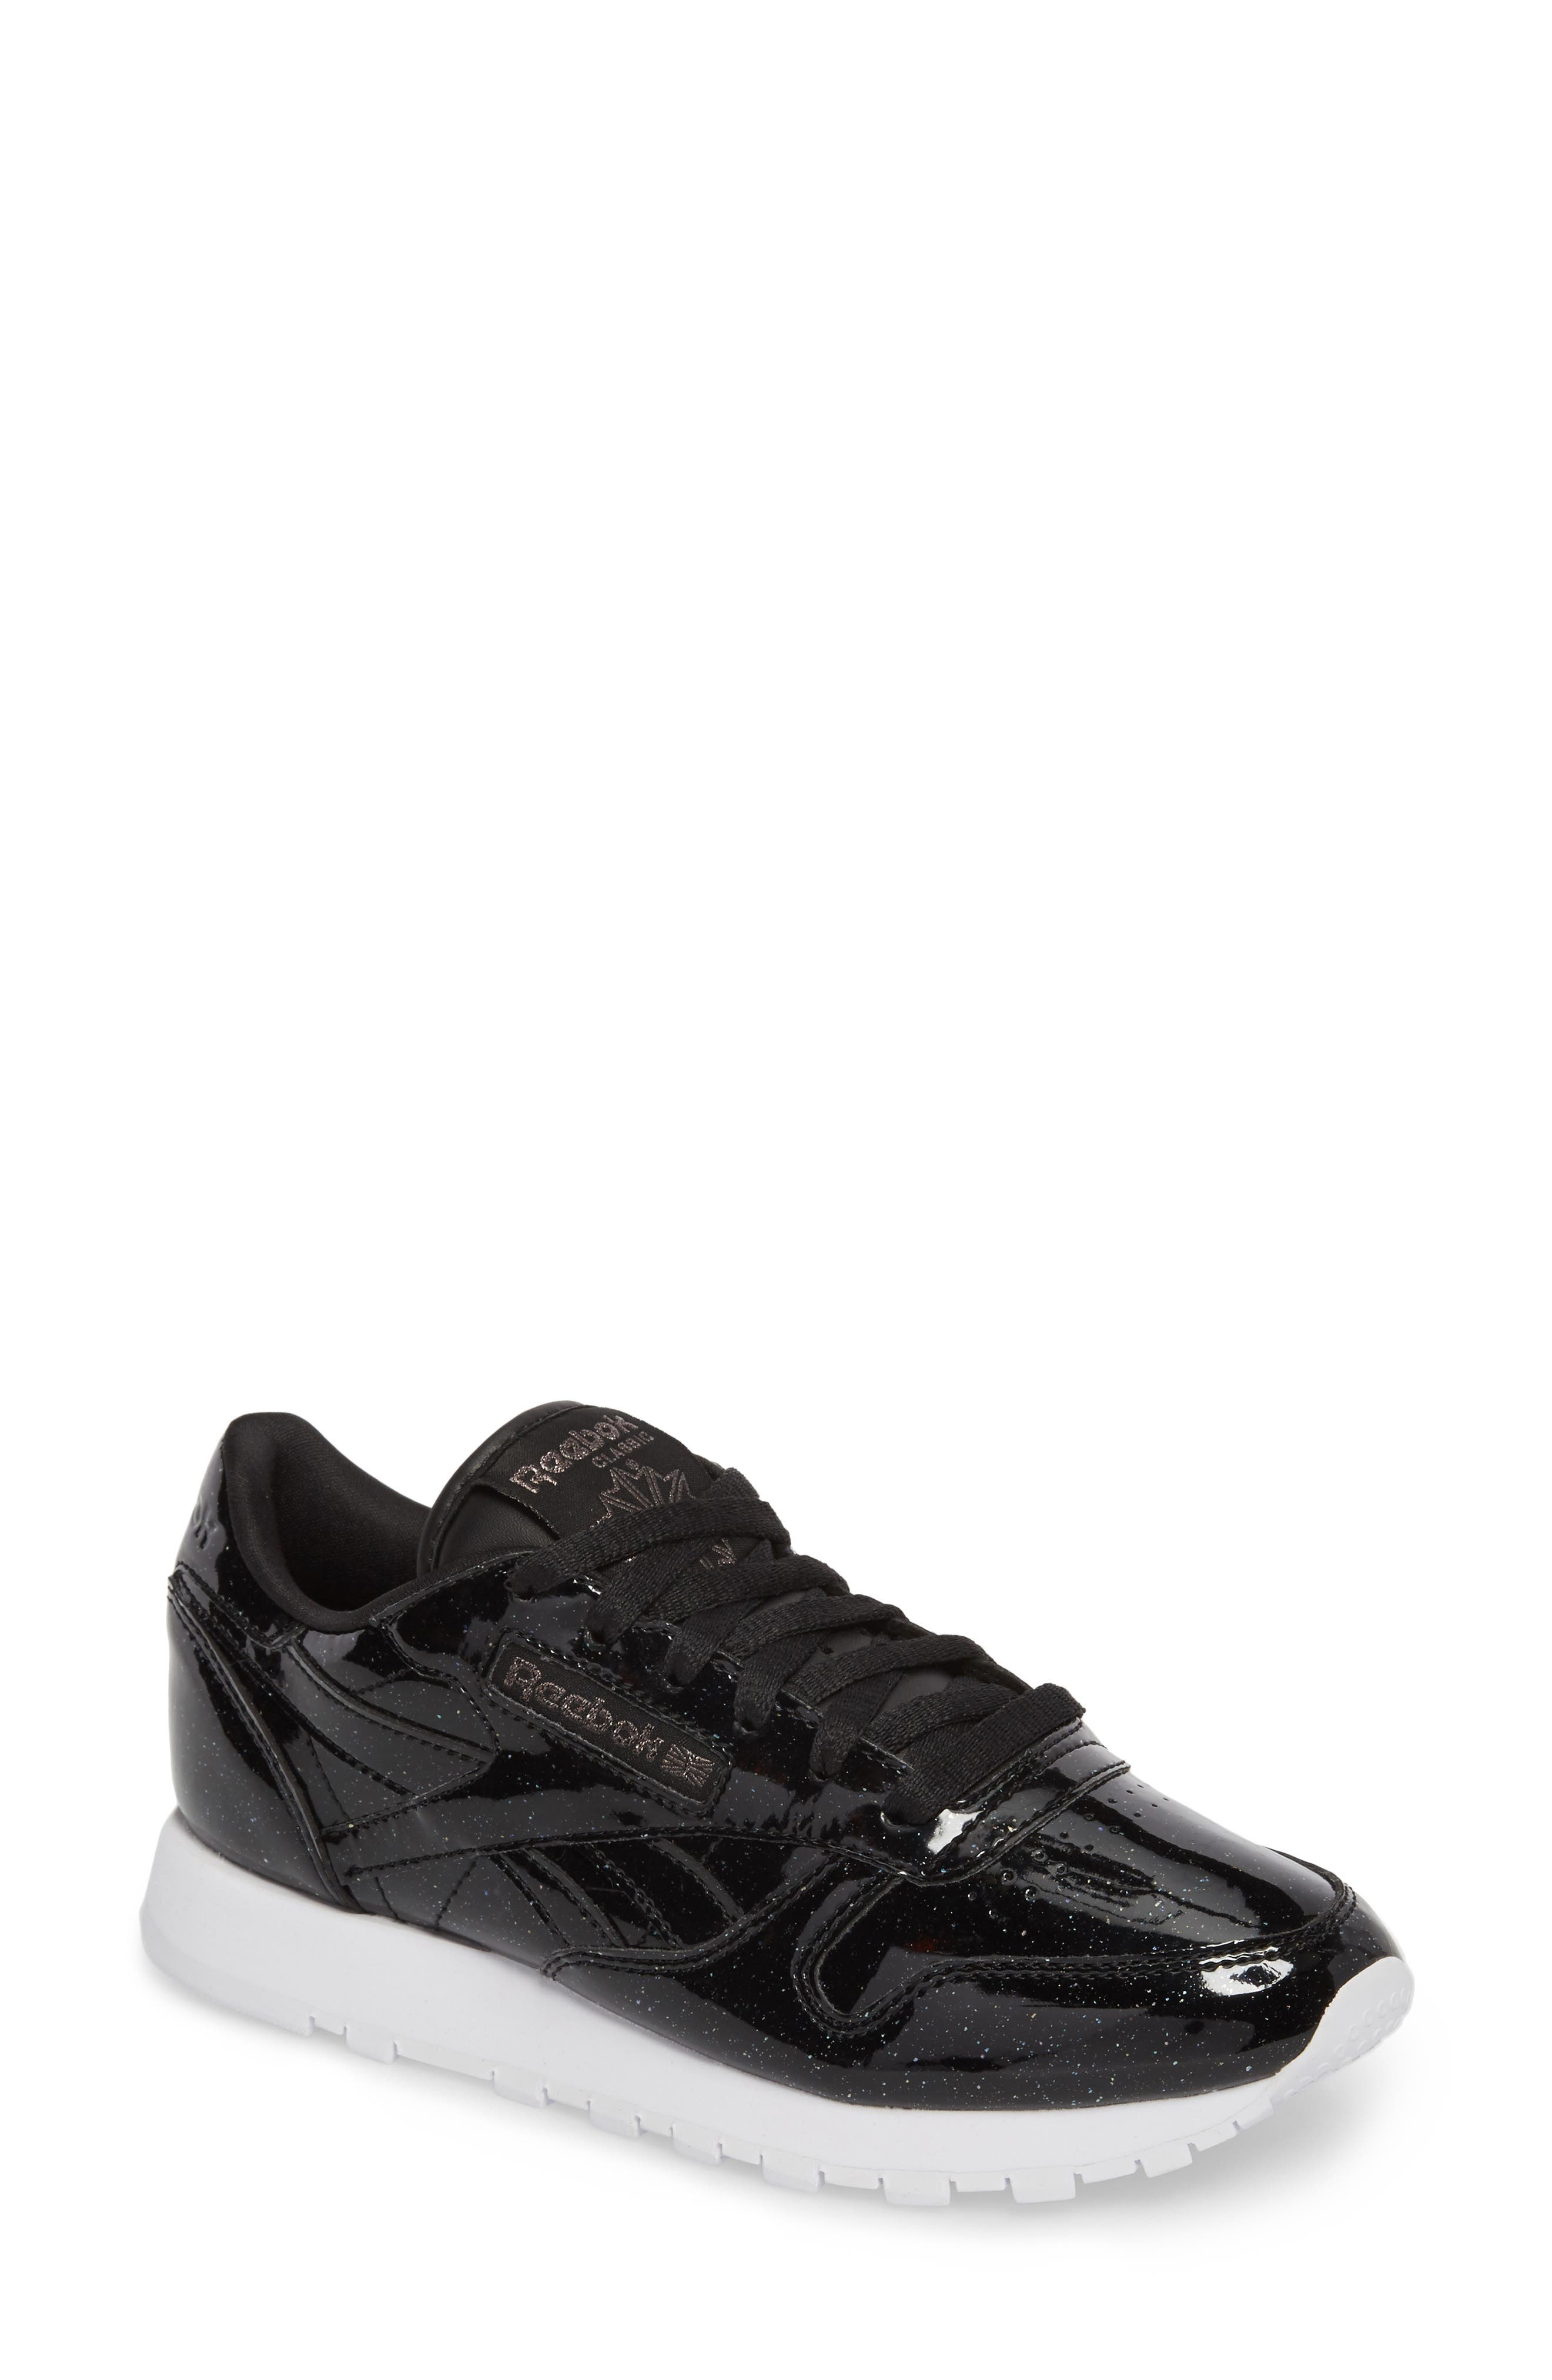 Classic Leather Sneaker,                             Main thumbnail 1, color,                             Pearl/ Black/ White